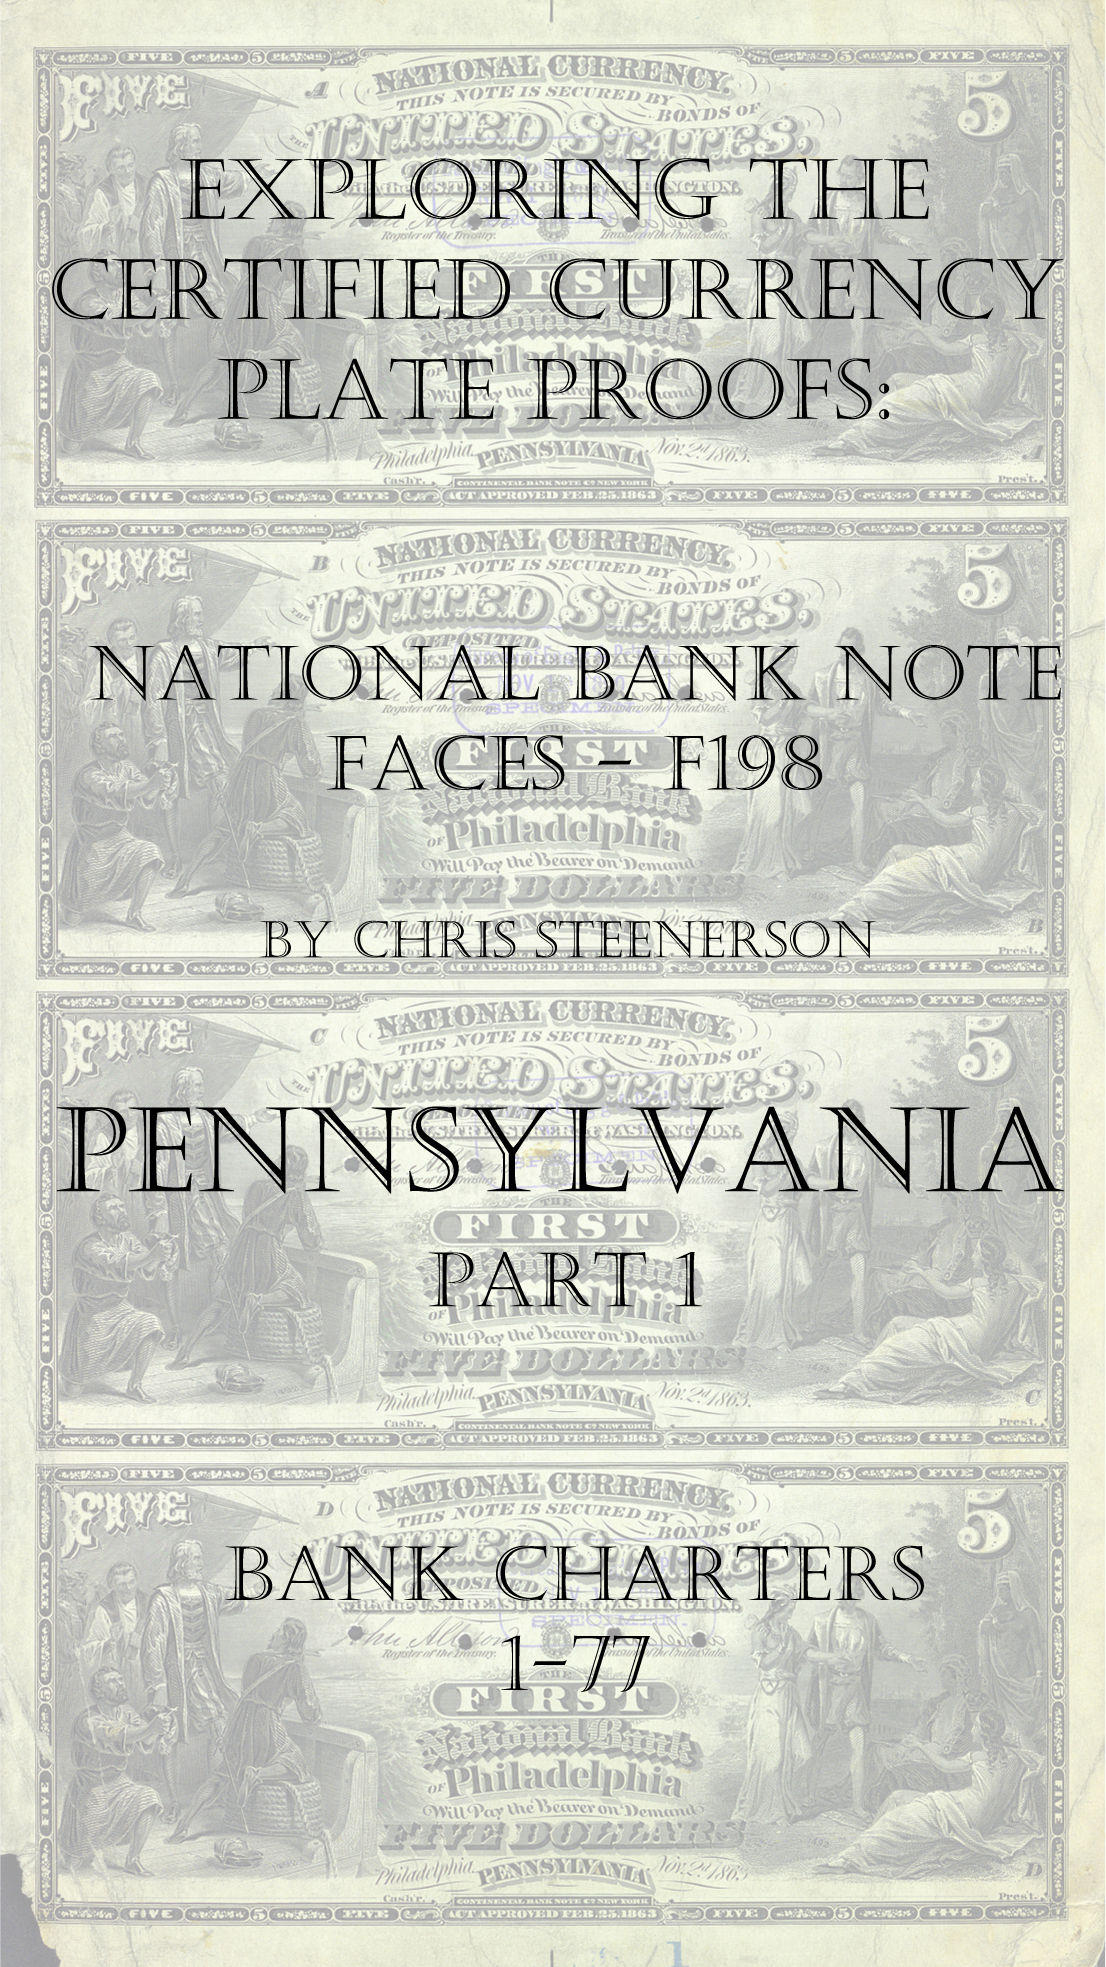 Pennsylvania National Bank Note Currency Proofs